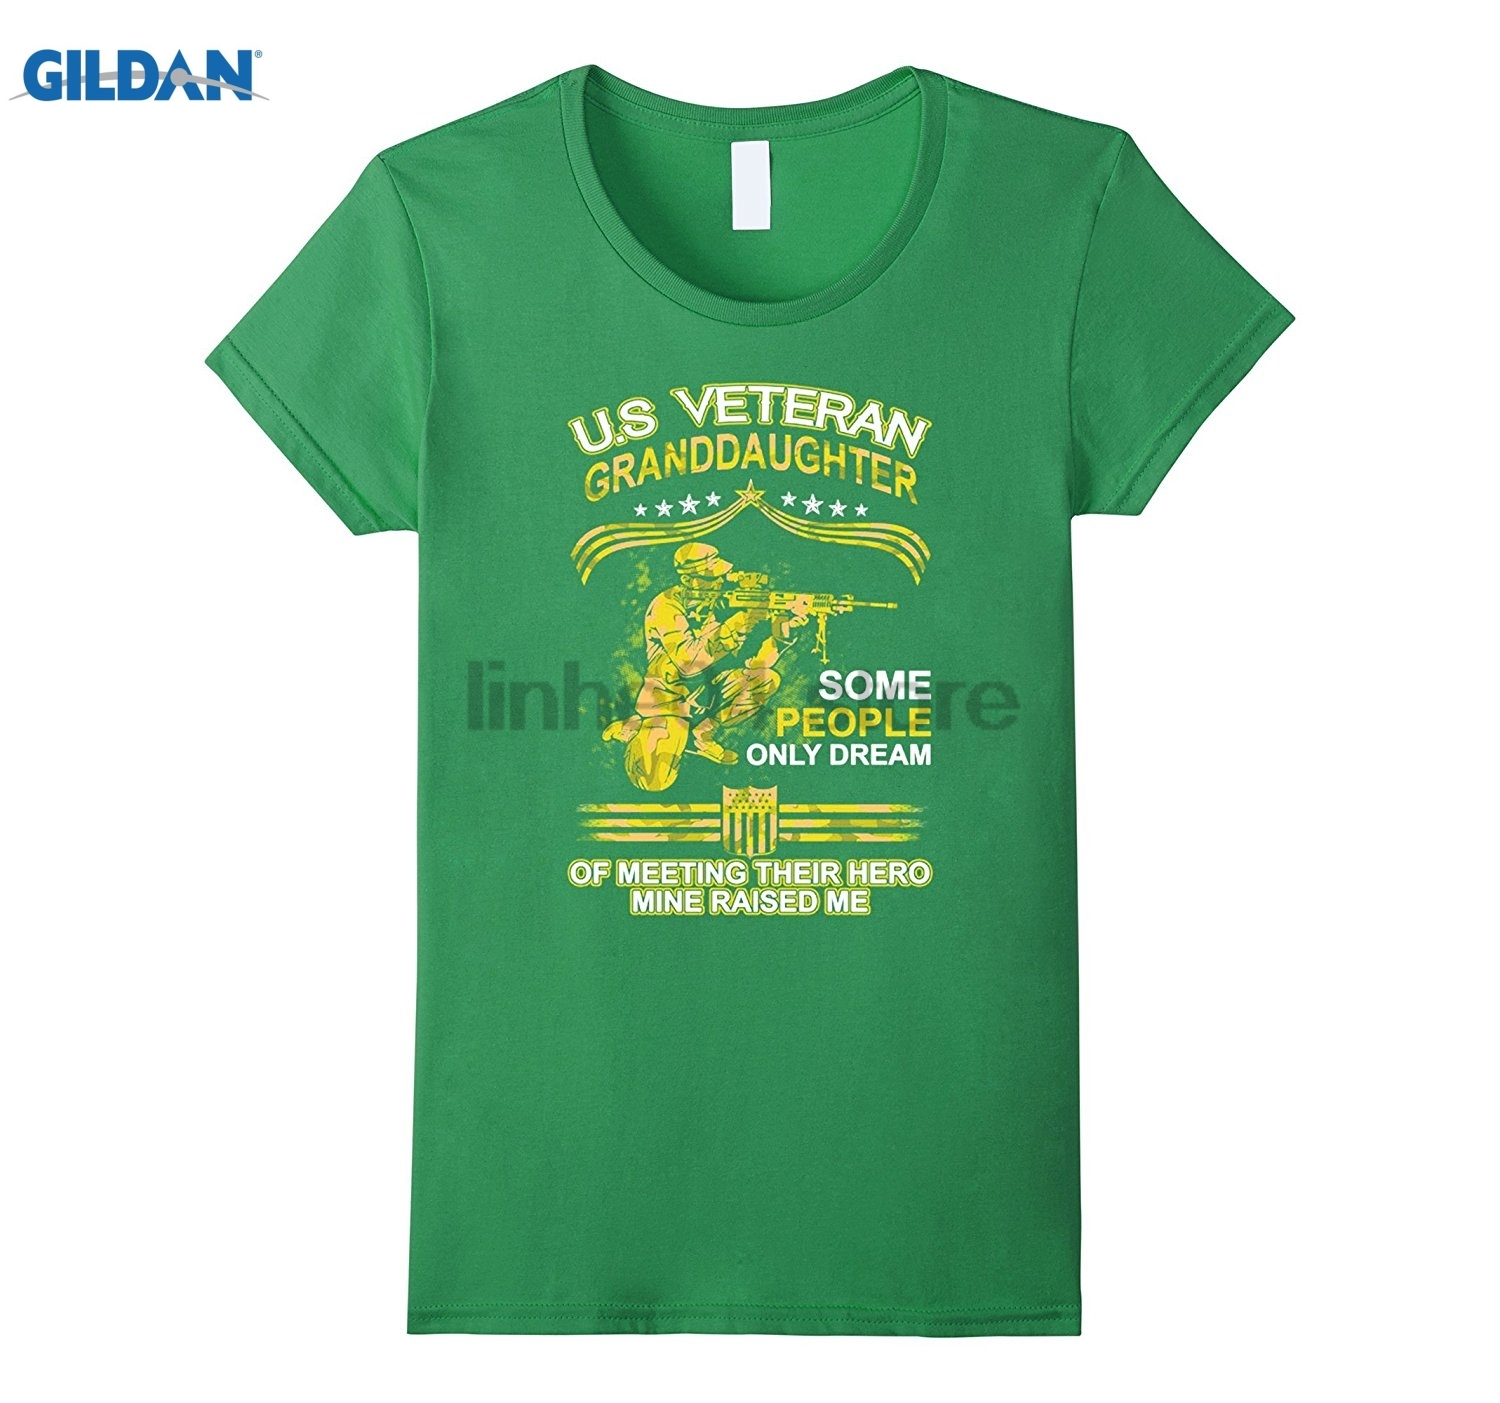 GILDAN U.S Veteran Granddaughter T-Shirt Dress female T-shirt Mothers Day Ms. T-shirt ...